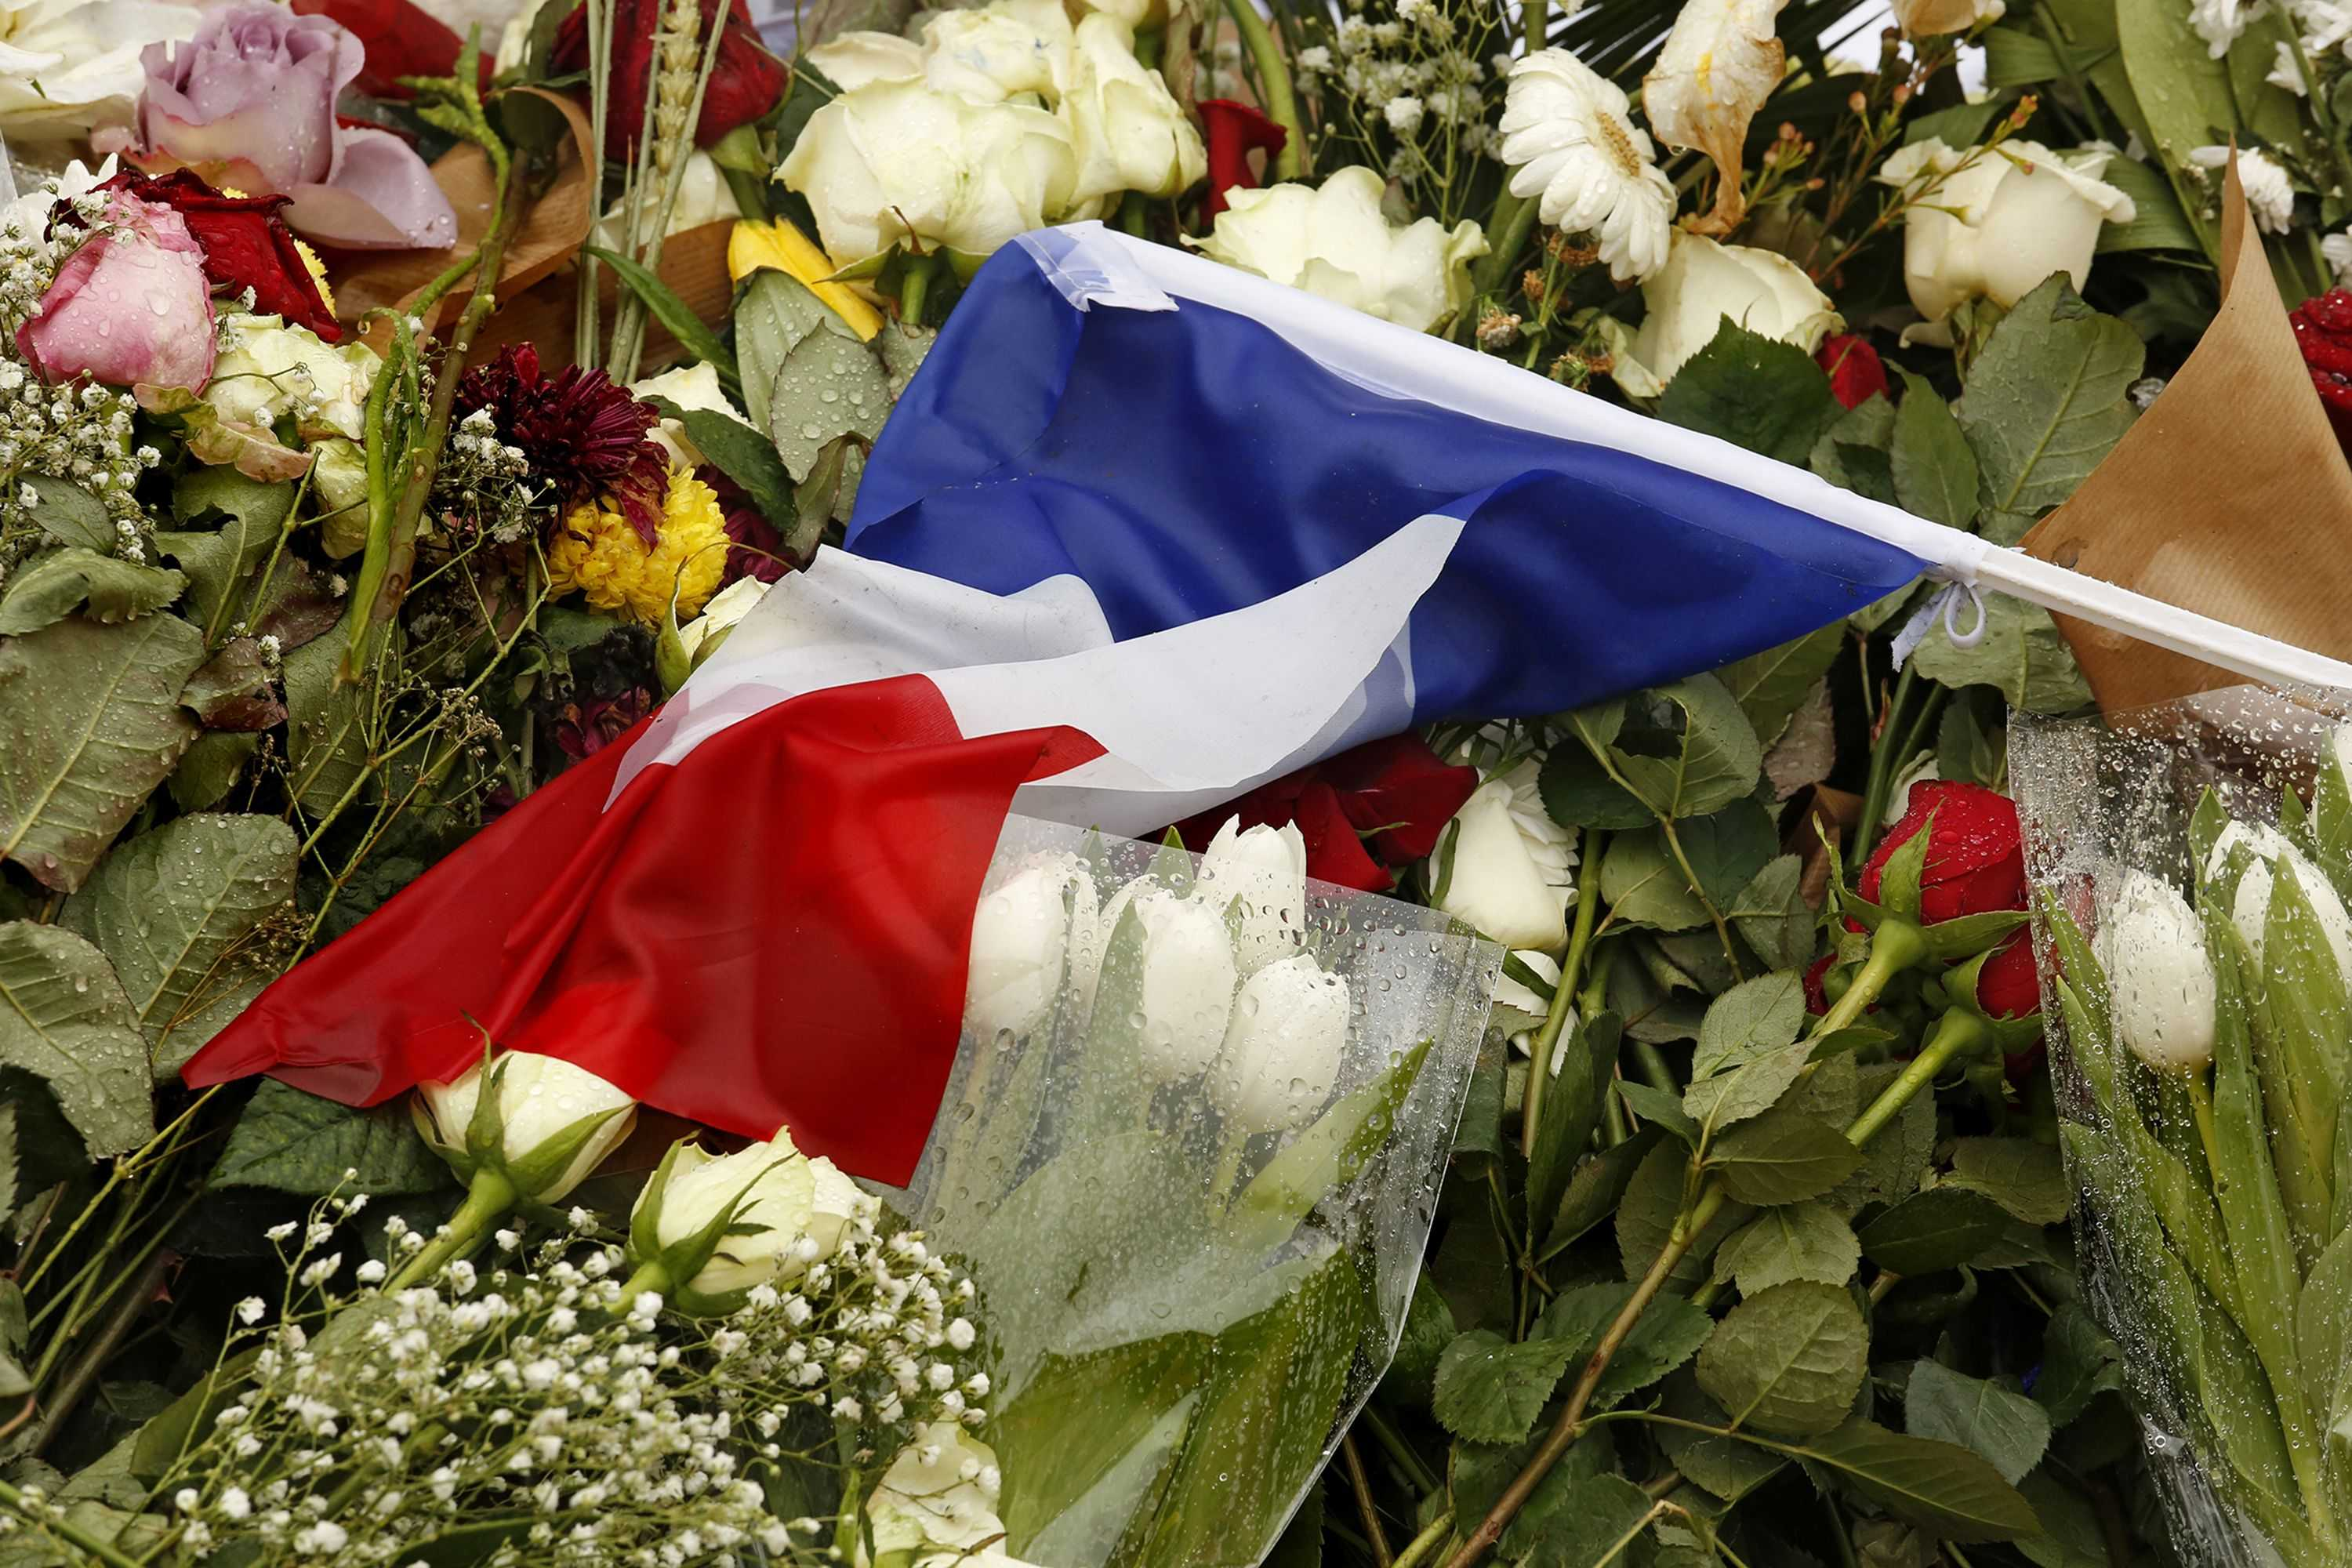 Light rain falls on memorial cards, flowers and candles in Paris on Thursday, Nov. 19, 2015. (Carolyn Cole/Los Angeles Times/TNS)